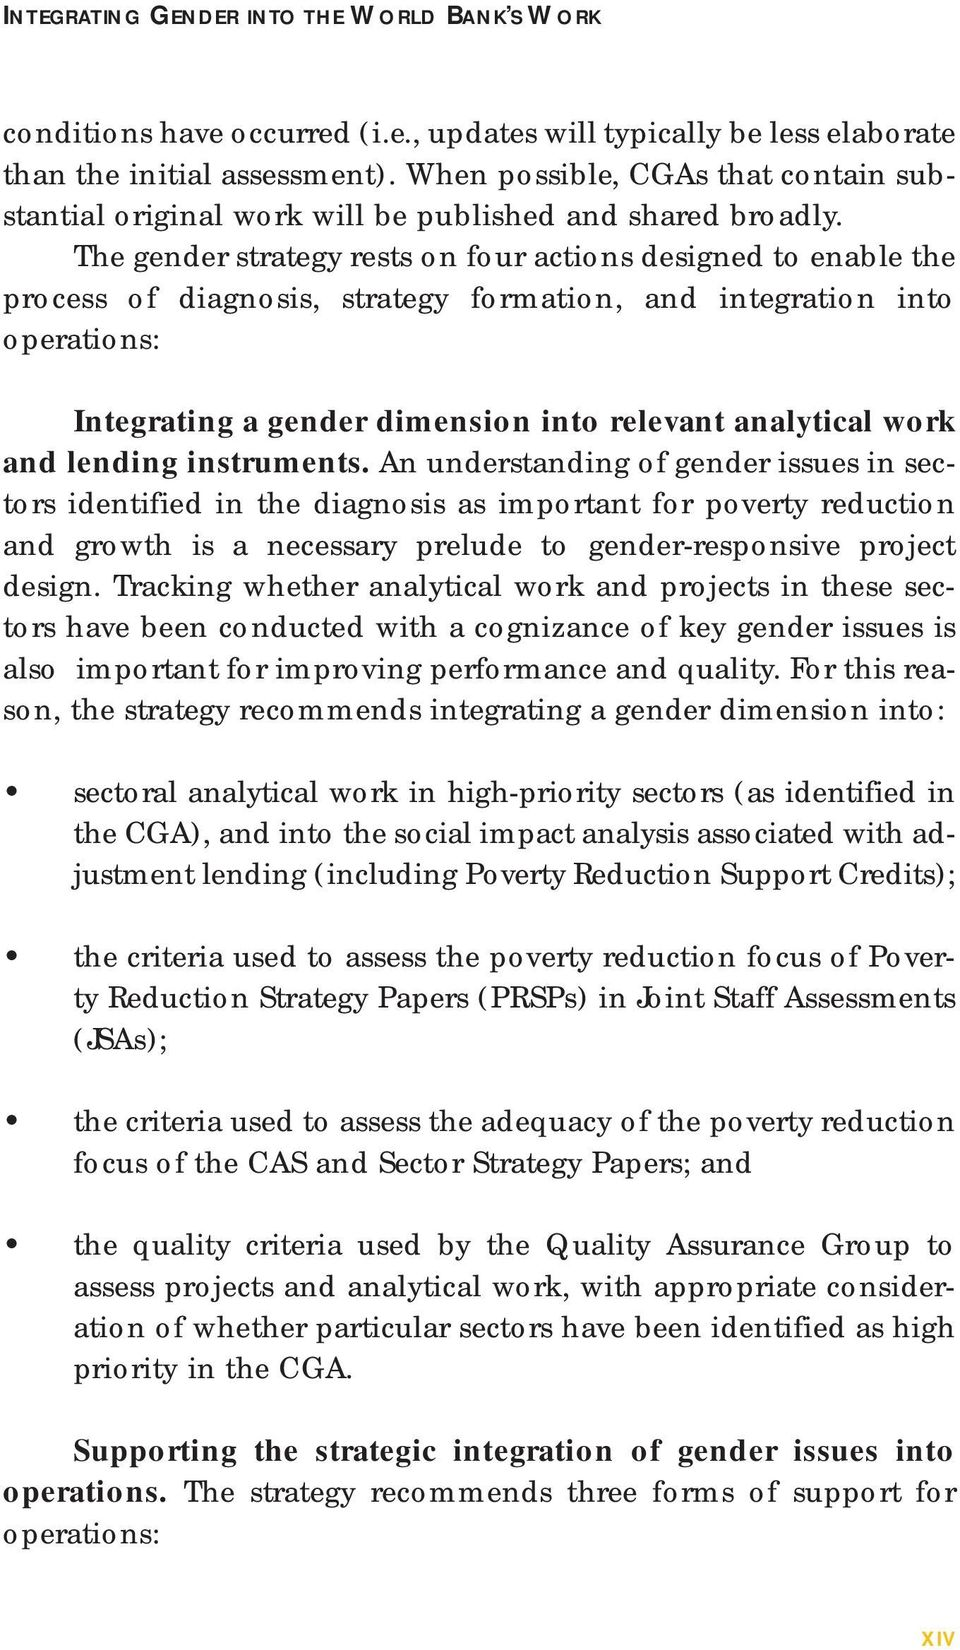 The gender strategy rests on four actions designed to enable the process of diagnosis, strategy formation, and integration into operations: Integrating a gender dimension into relevant analytical